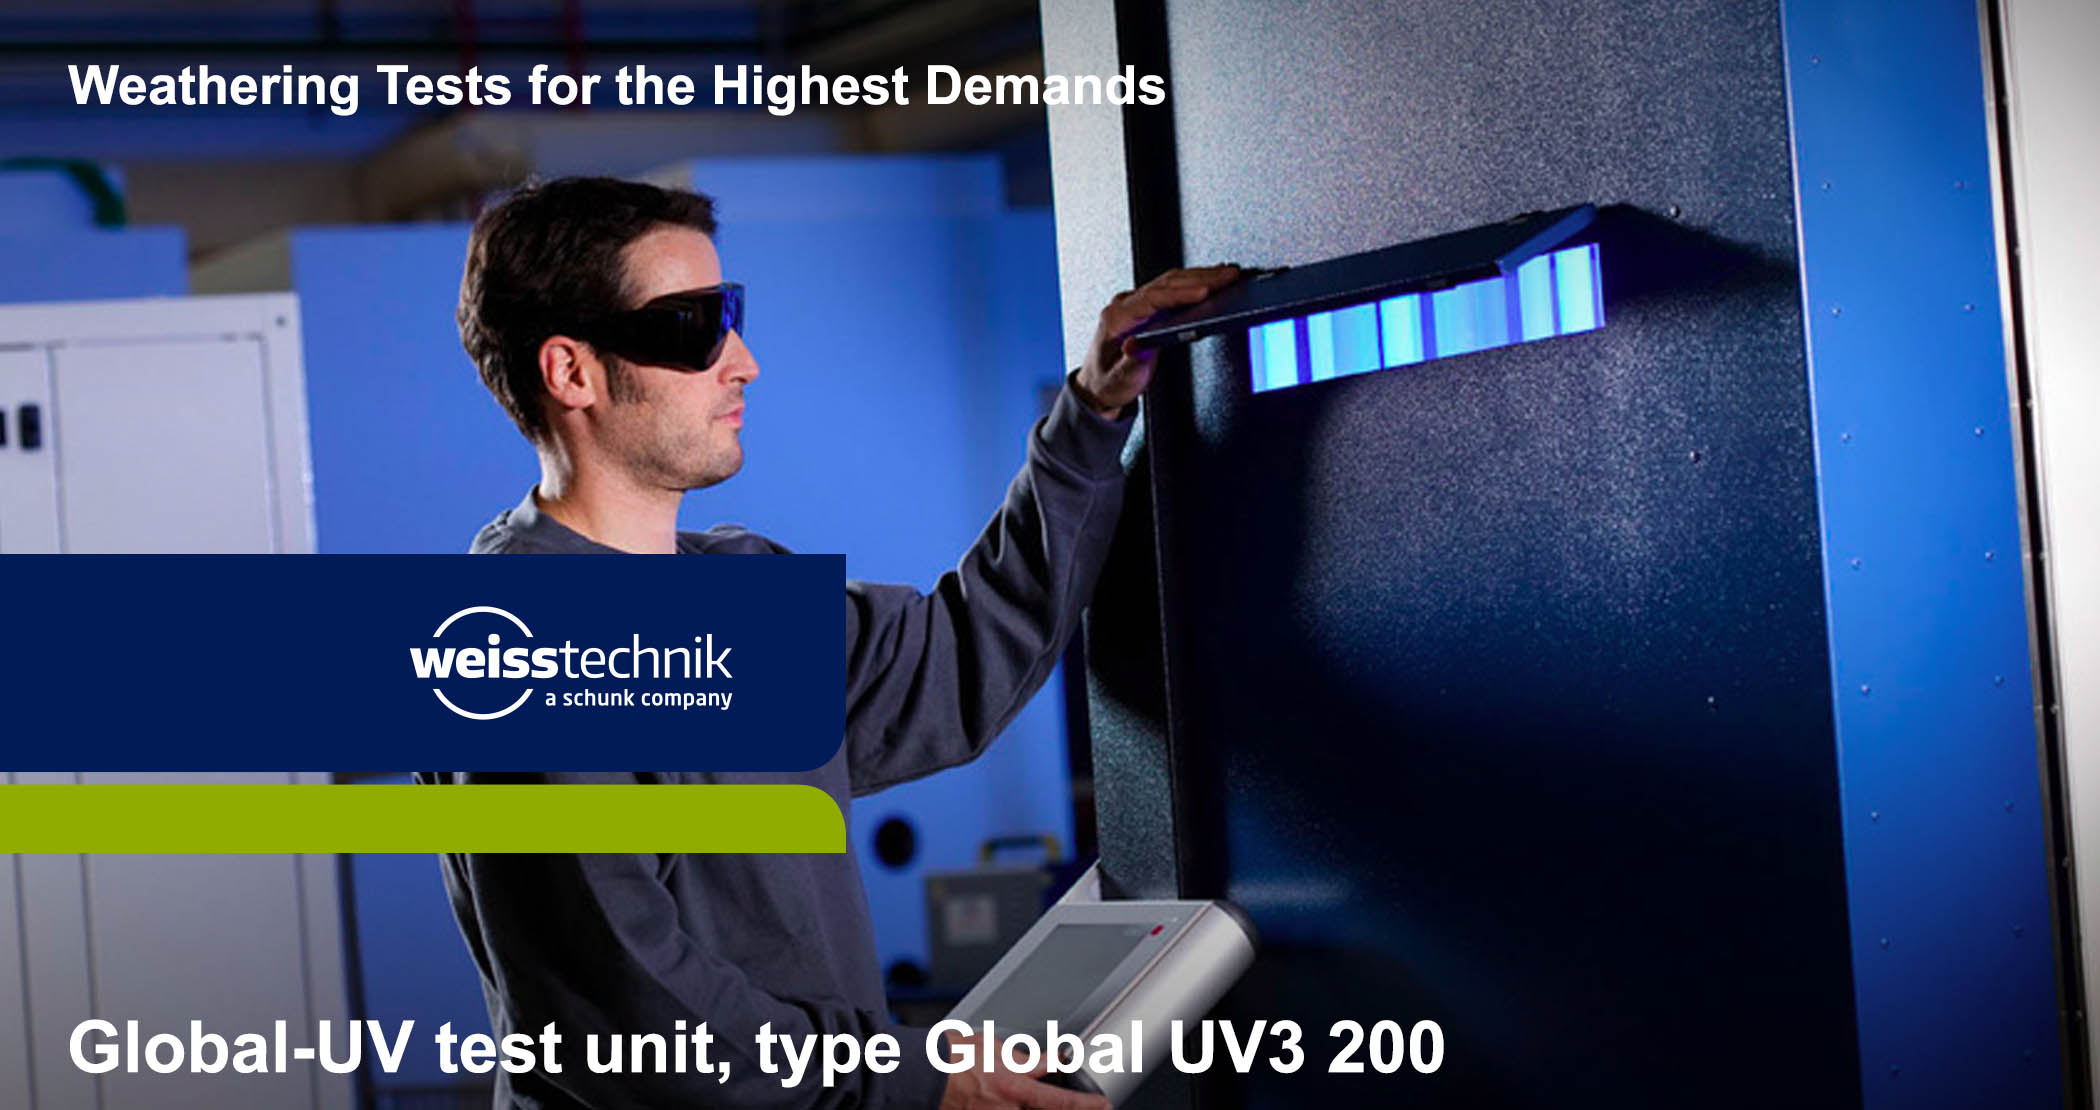 Global UV3 200 test unit